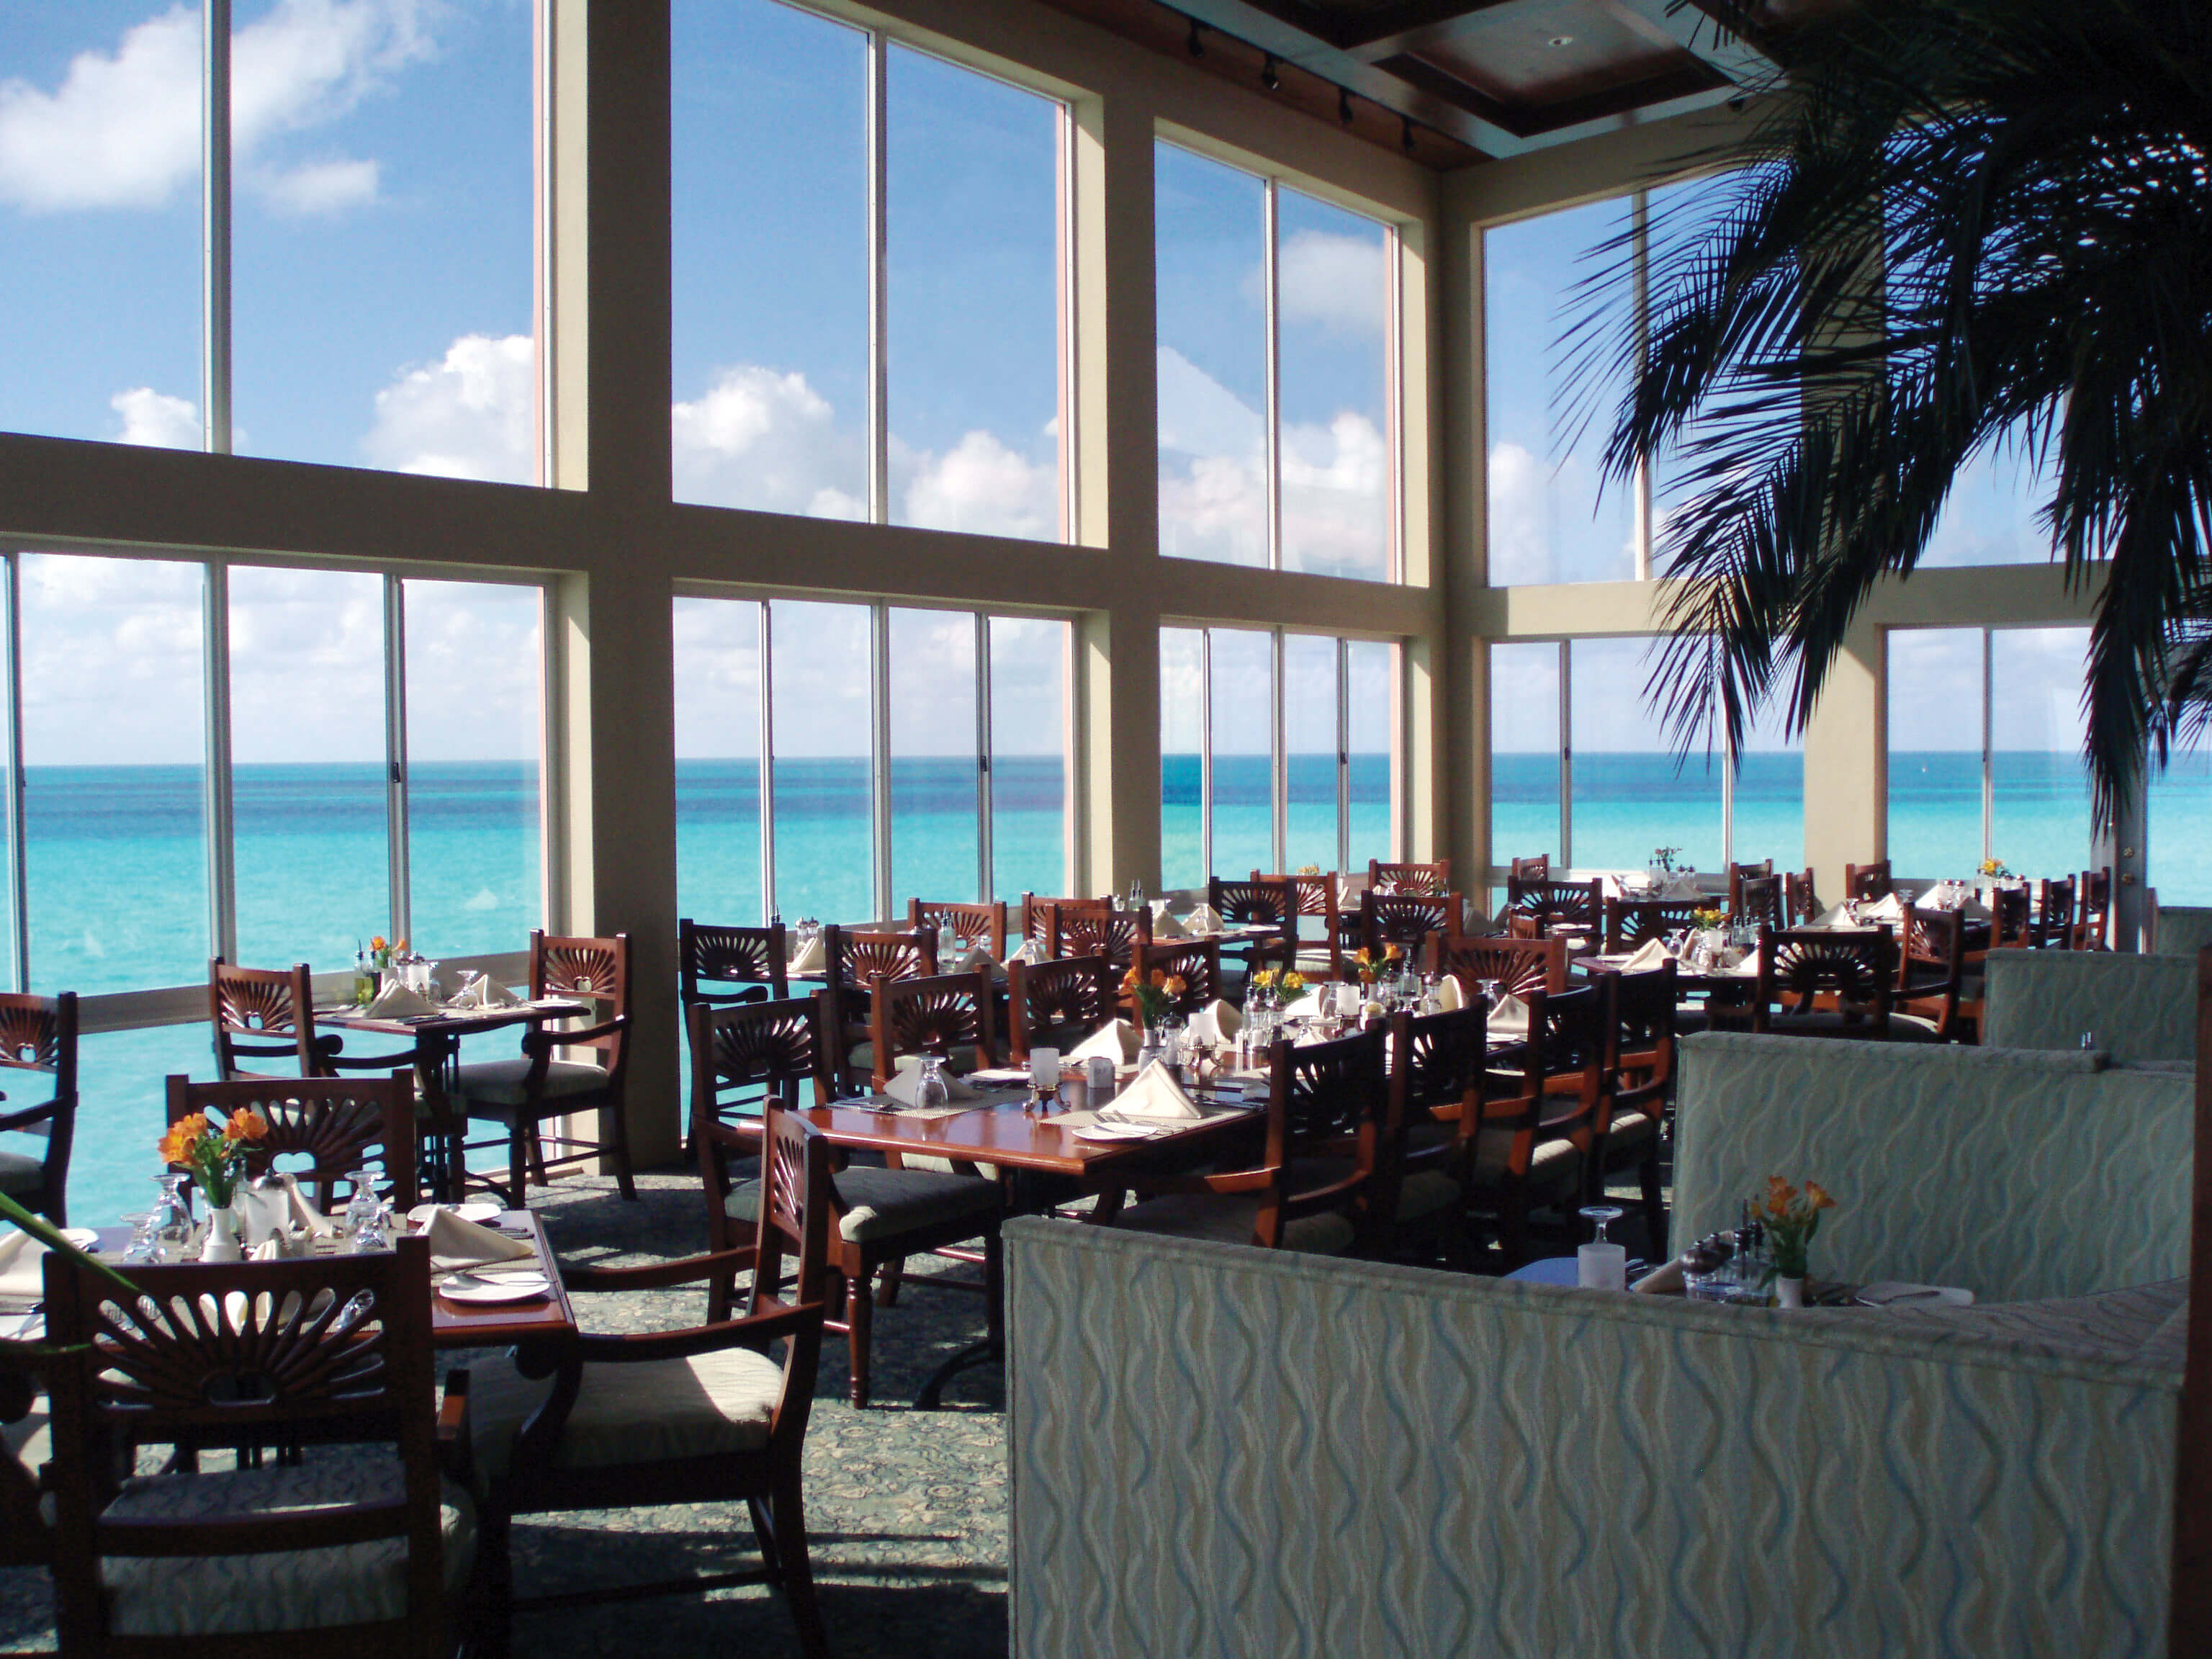 Destination Wedding Venue - Pompano Beach Club